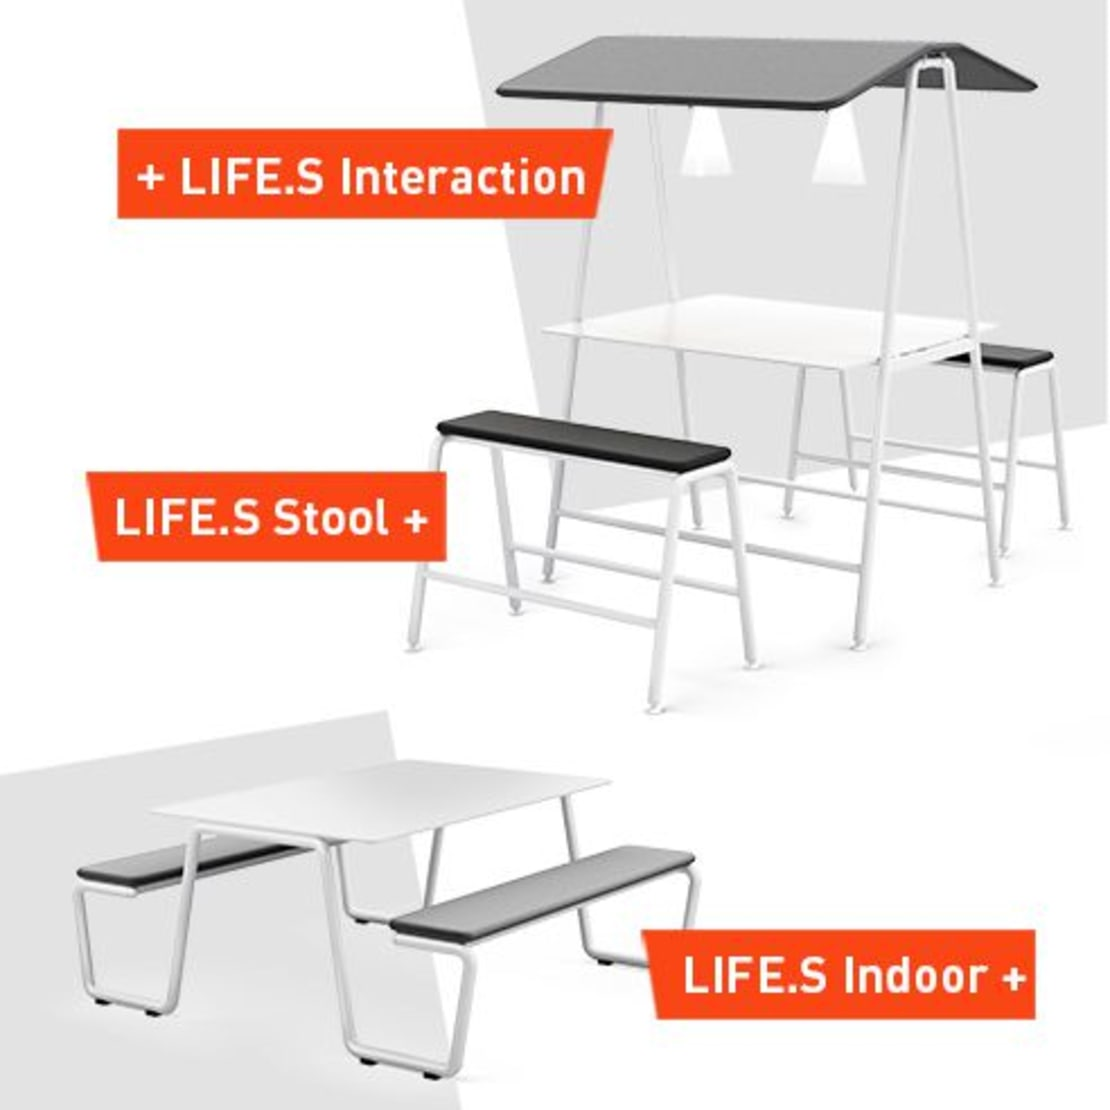 Extension of the LIFE.S table range with solutions for spontaneous meetings.